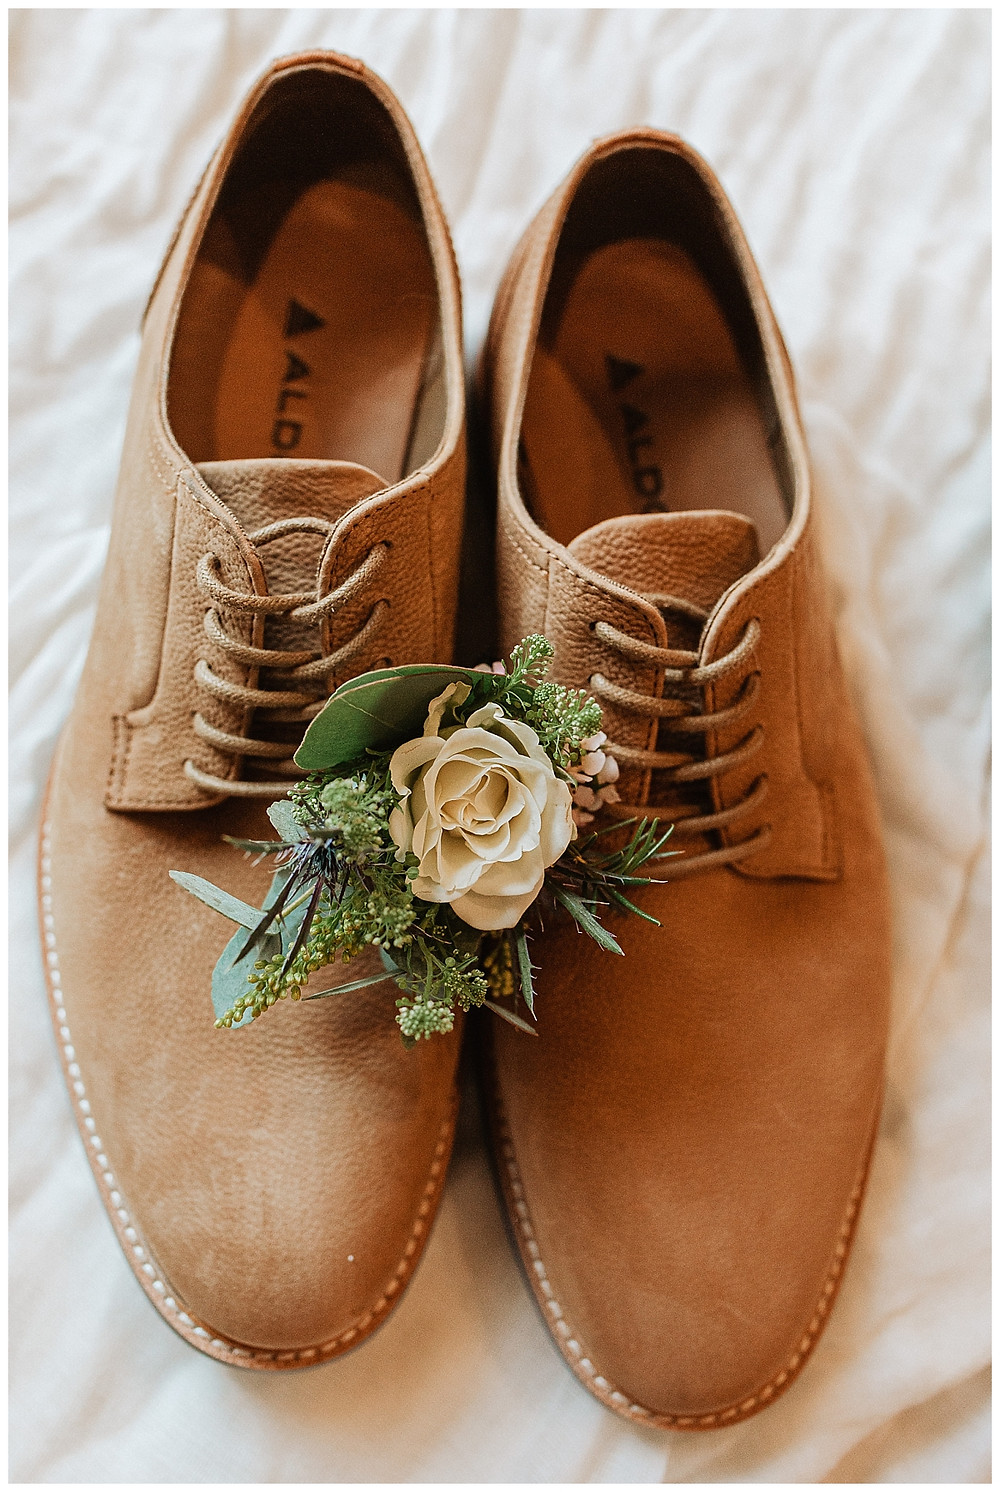 Groom's Saddle Stitch Light Brown Dress Shoes and White Rose Boutonniere